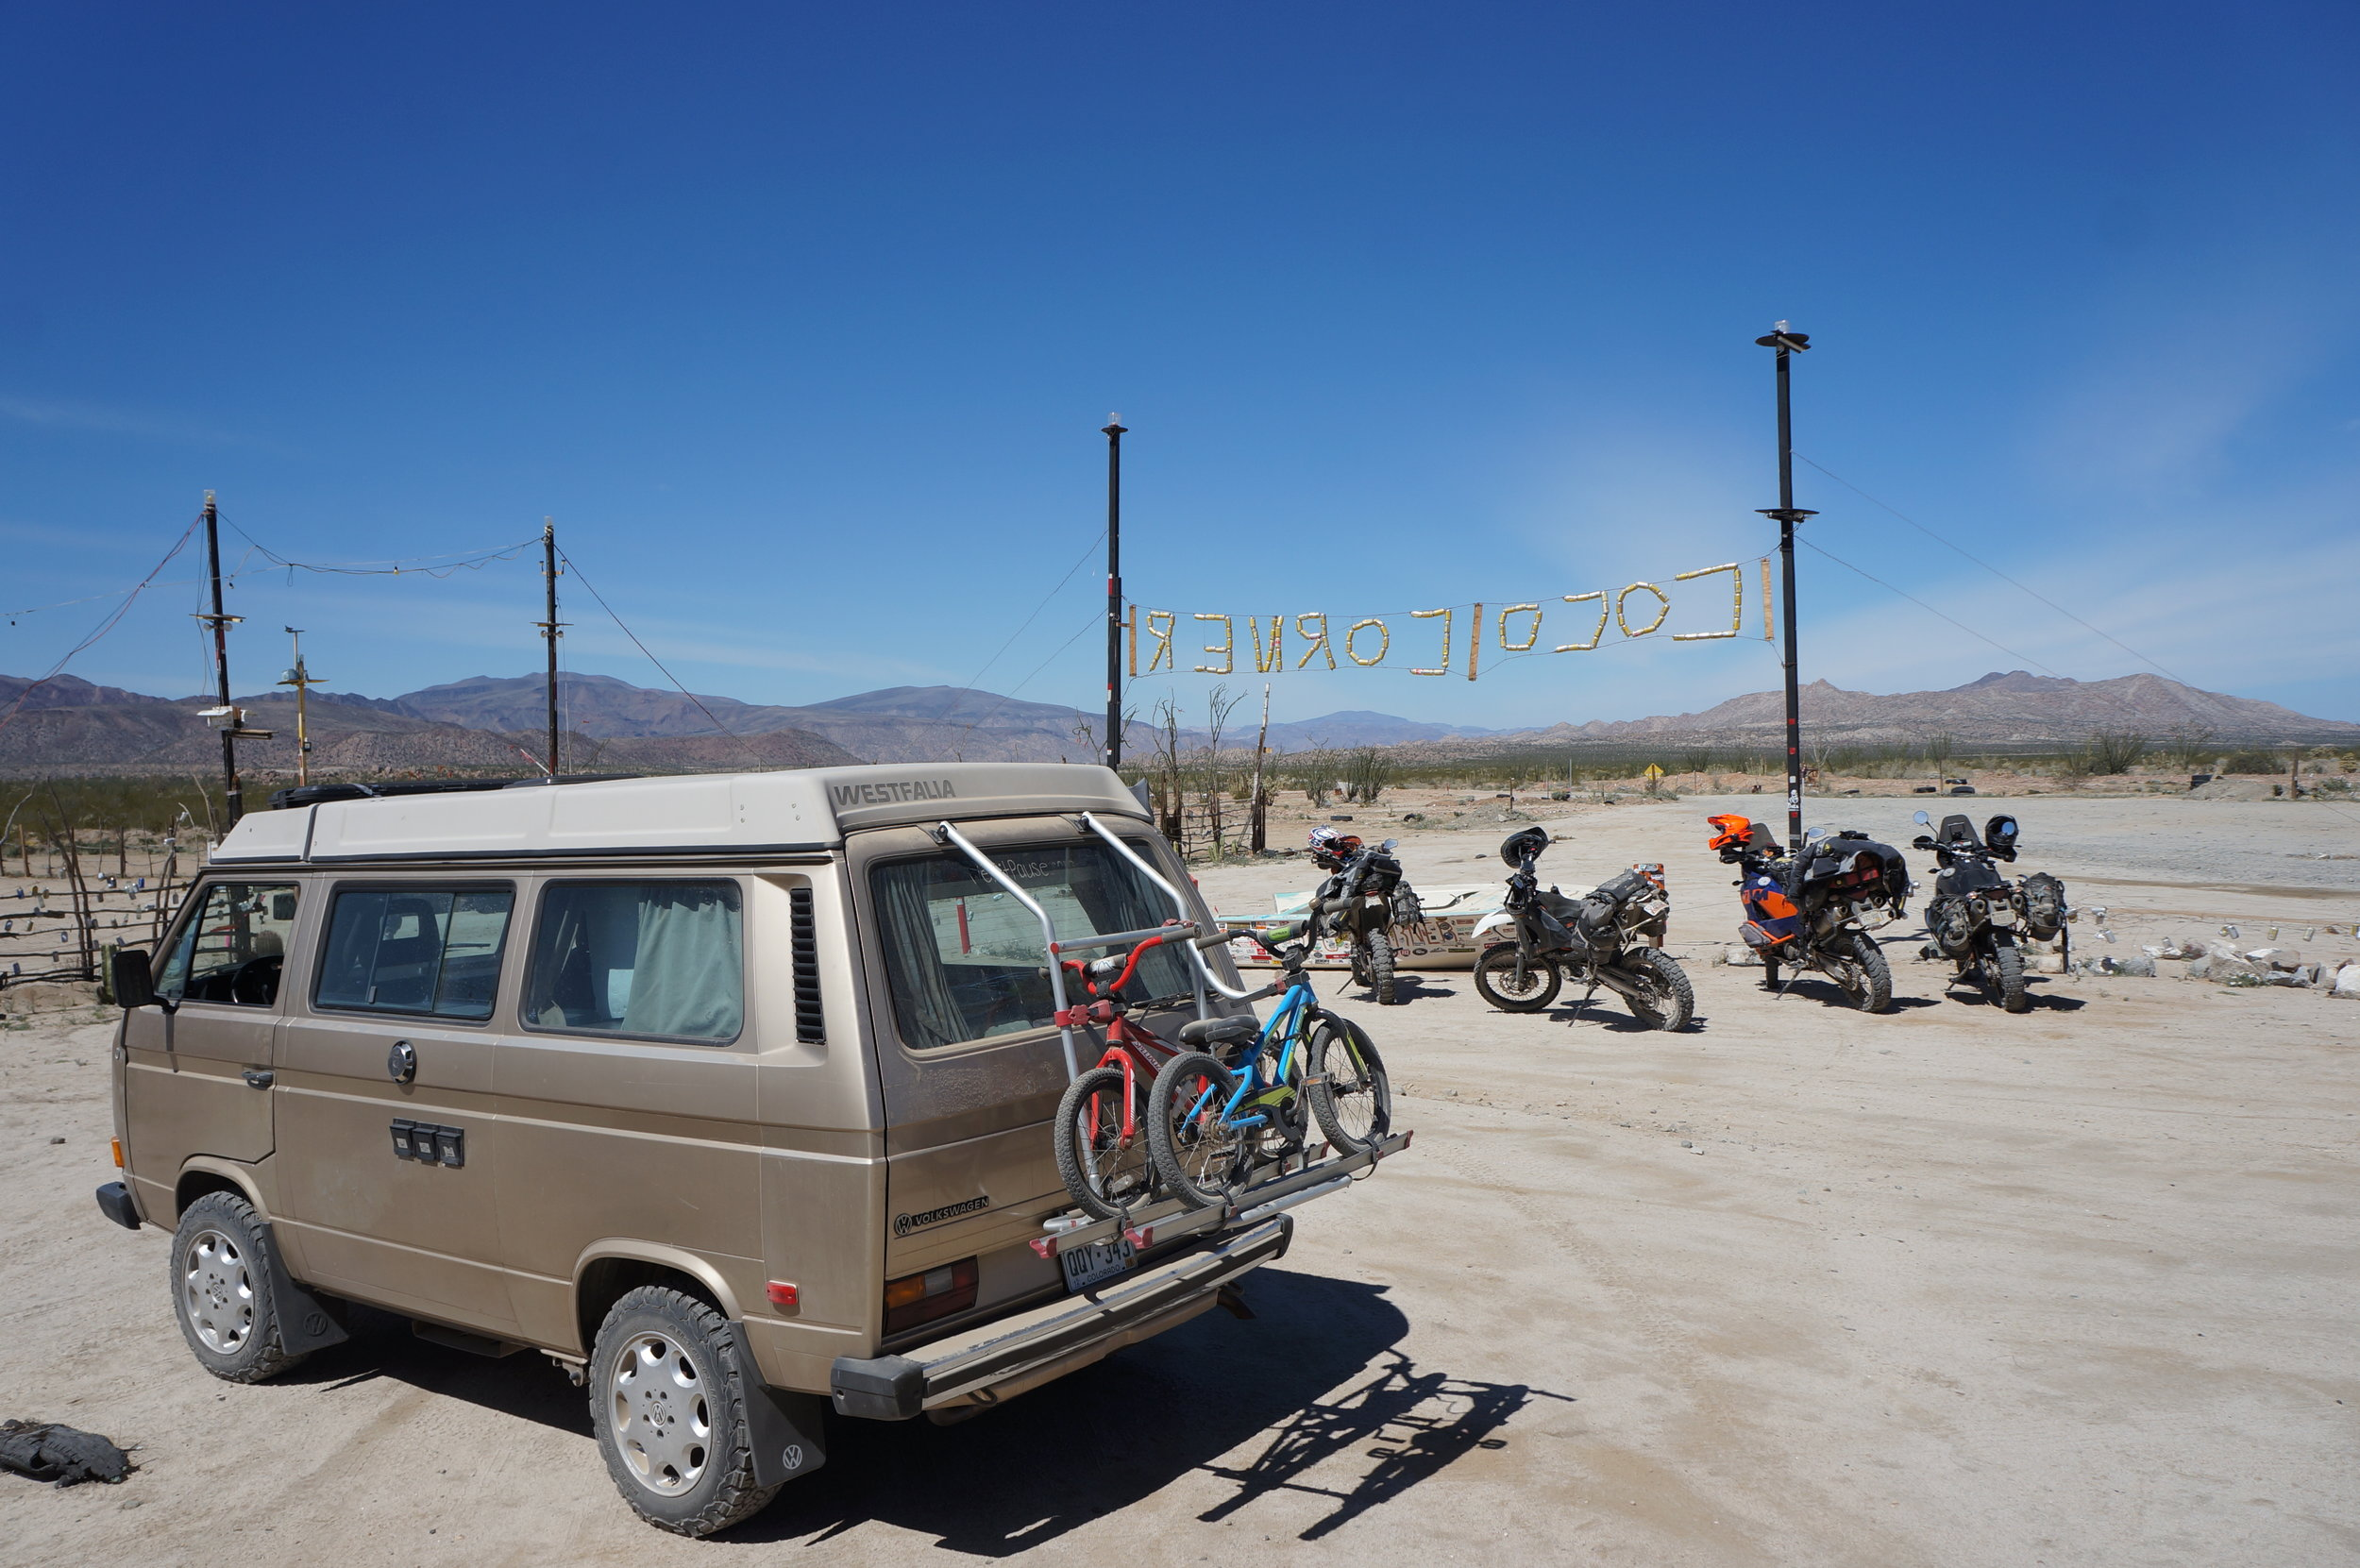 Chip making a stop at Coco's Corner in Baja.